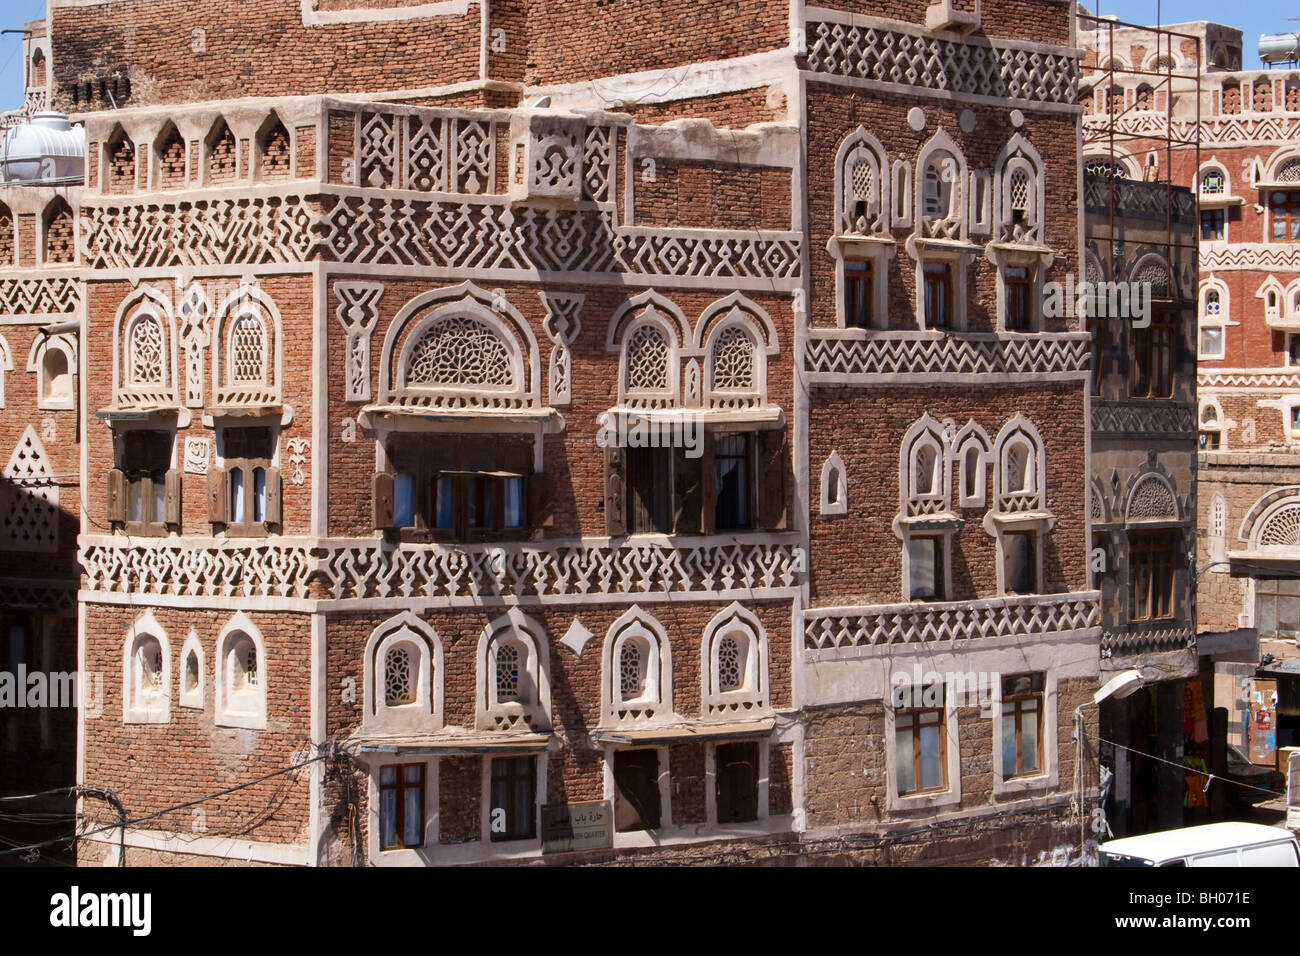 Decorated Homes In Old Town Sanaa, Yemen